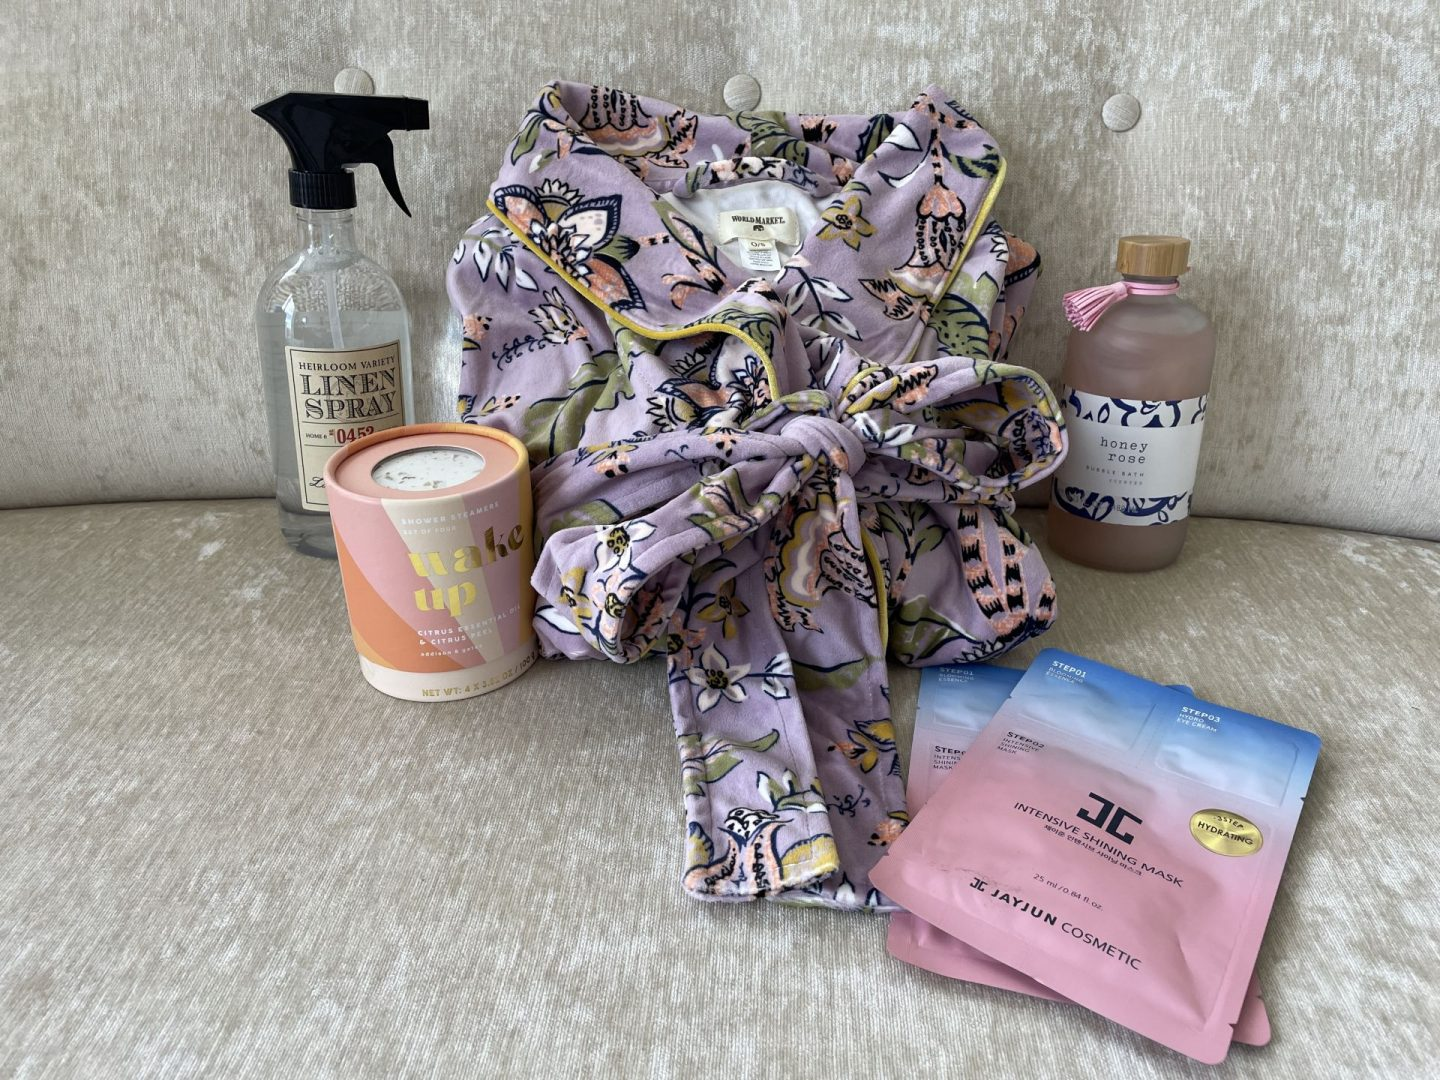 Spa Staycation Products